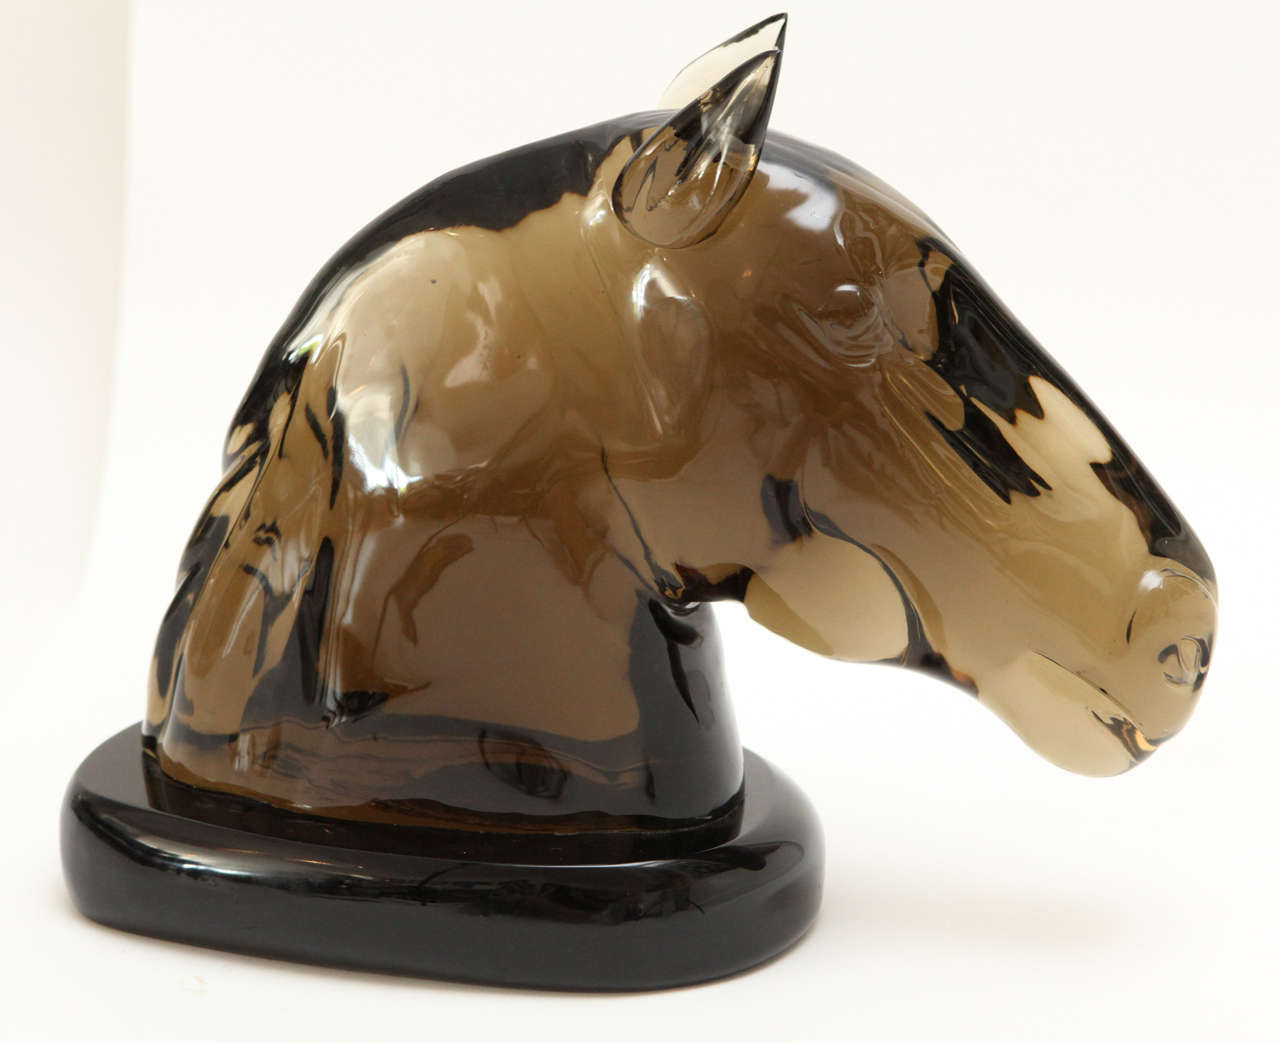 A stunning smoke grey Murano glass horse head sculpture by master glass artist, Ermanno Nason. Signed and dated on the base